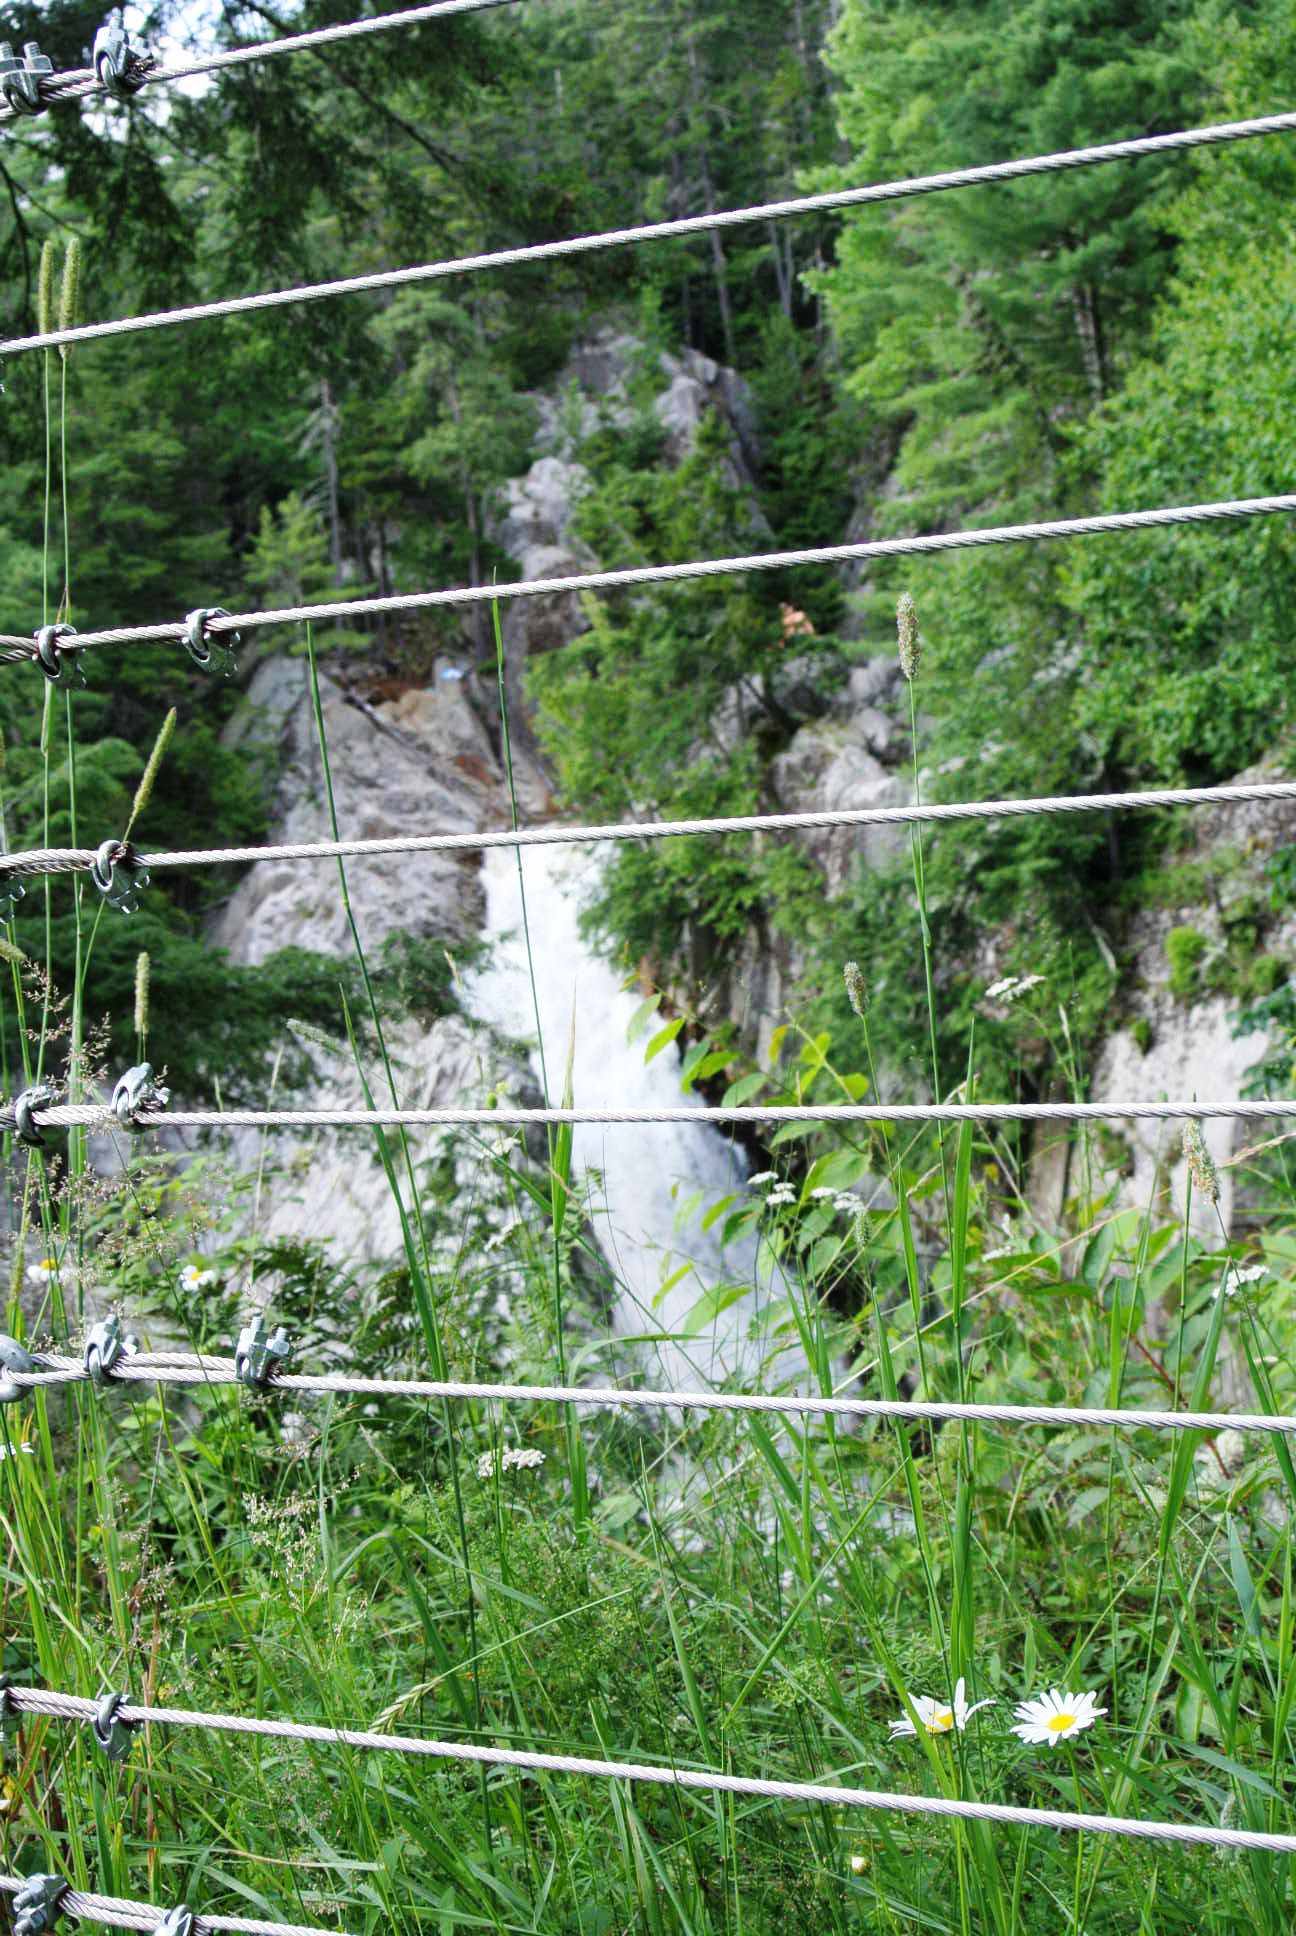 Falls of Lana behind safety fencing